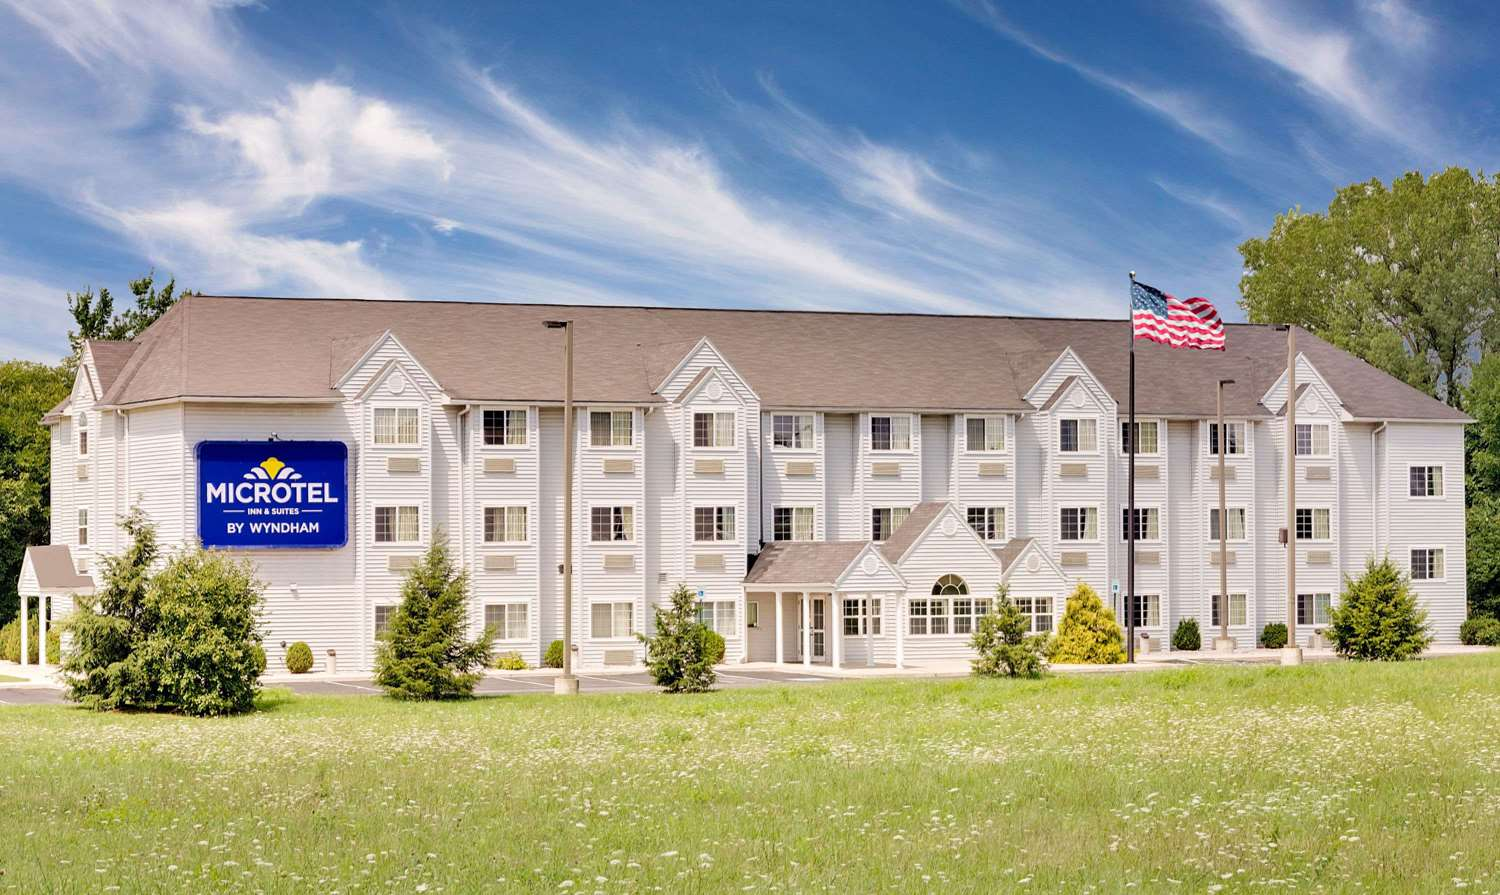 Exterior view - Microtel Inn & Suites by Wyndham Hagerstown